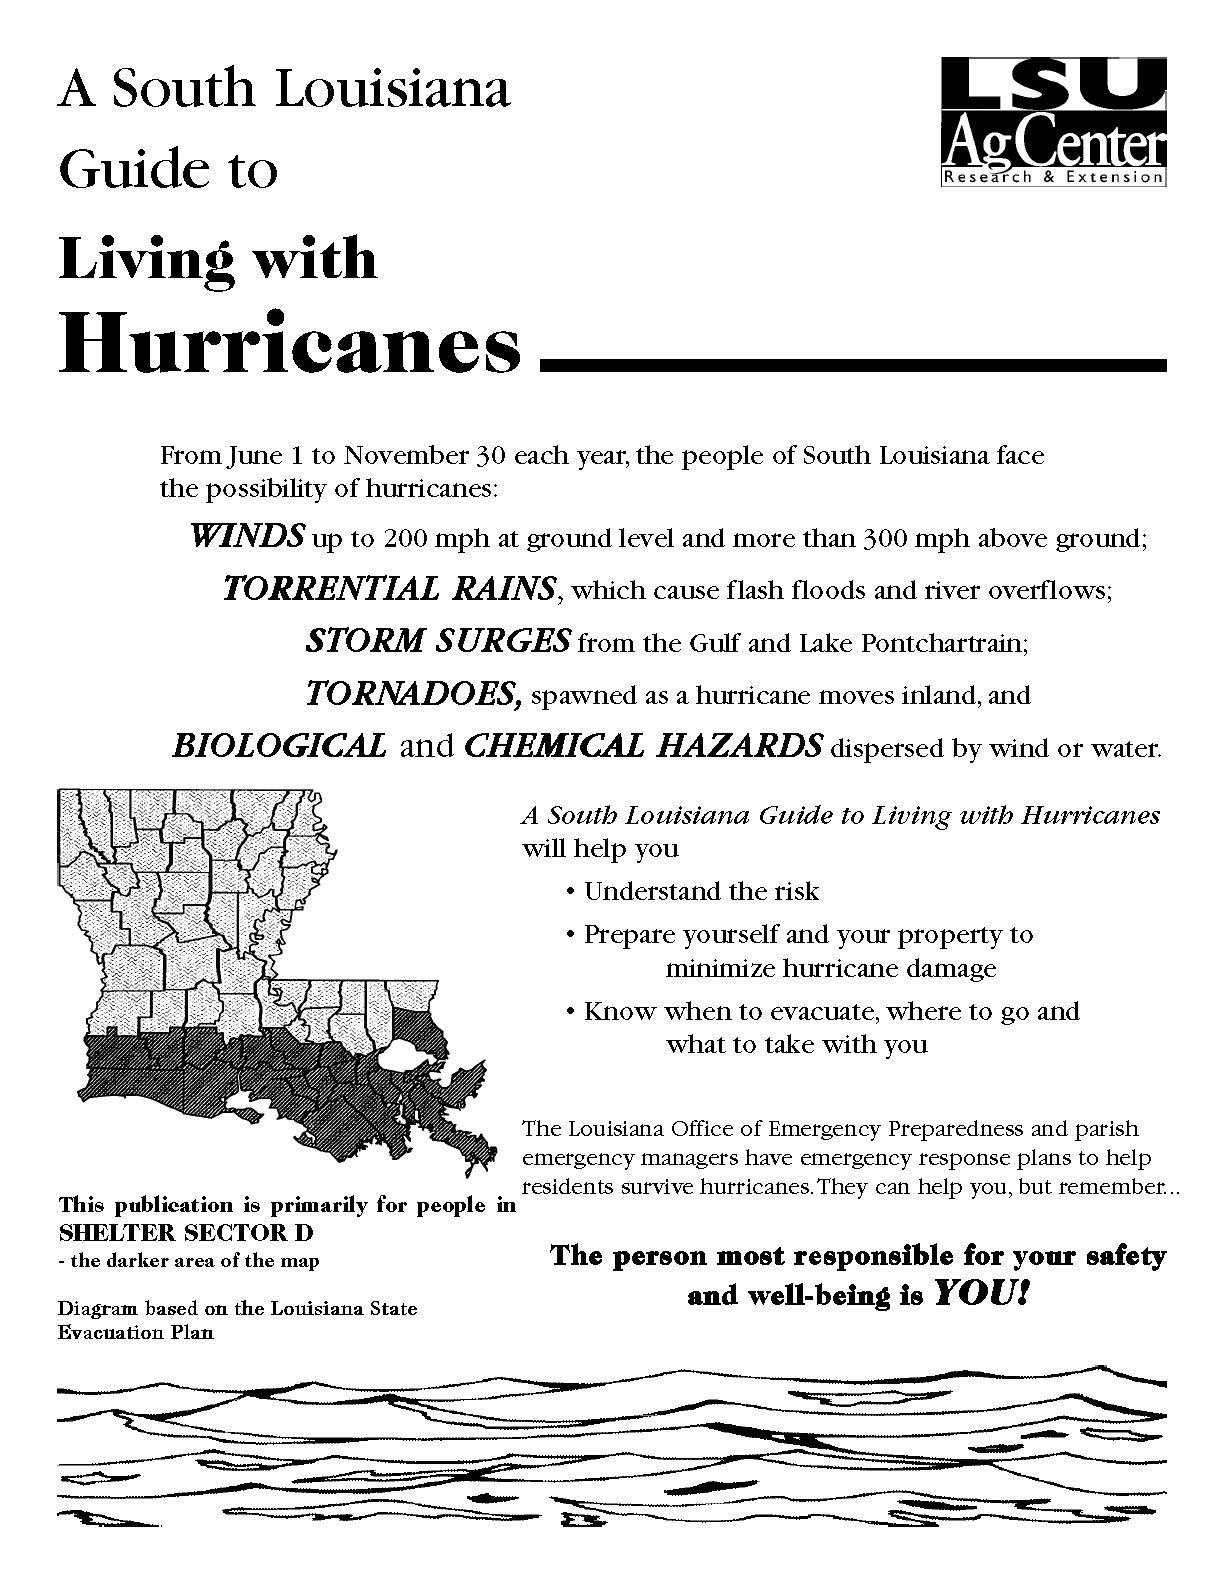 A South Louisiana Guide to Living with Hurricanes